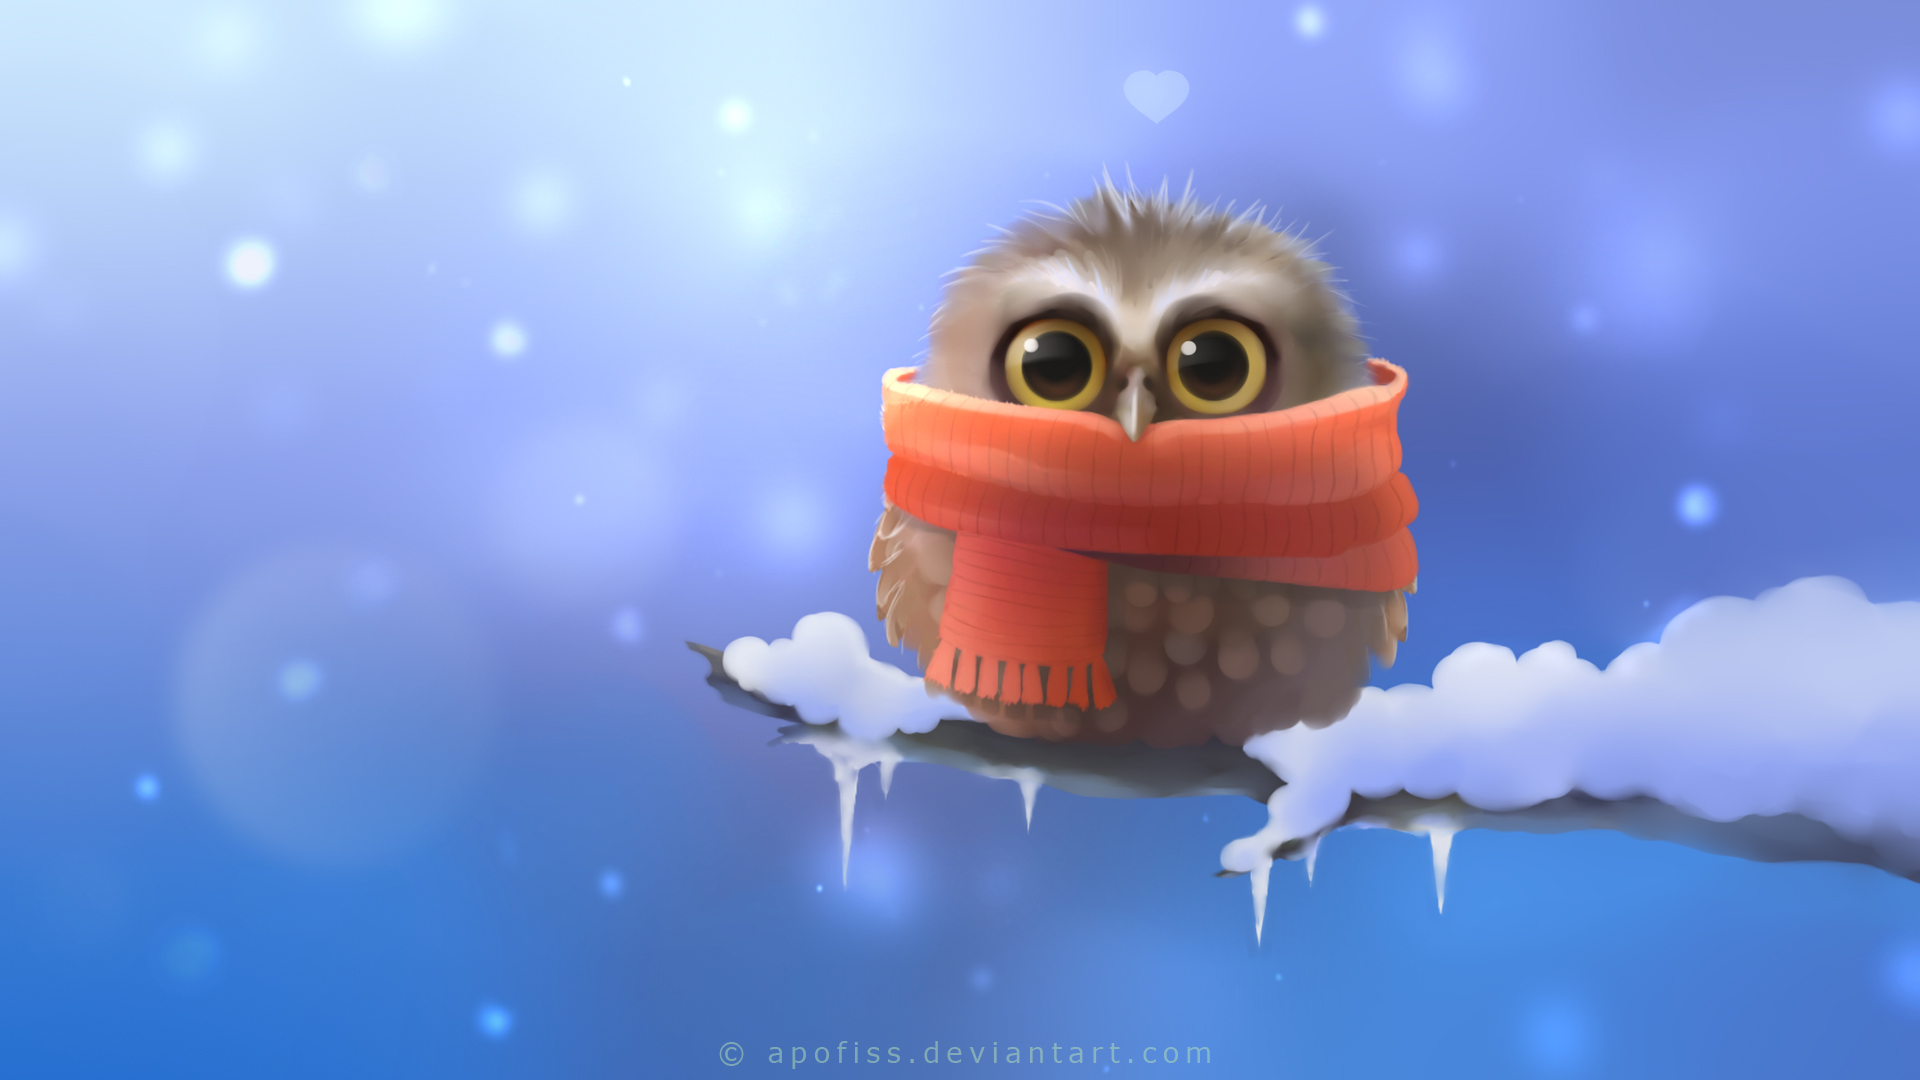 Cute owl hd artist 4k wallpapers images backgrounds photos and cute owl voltagebd Image collections